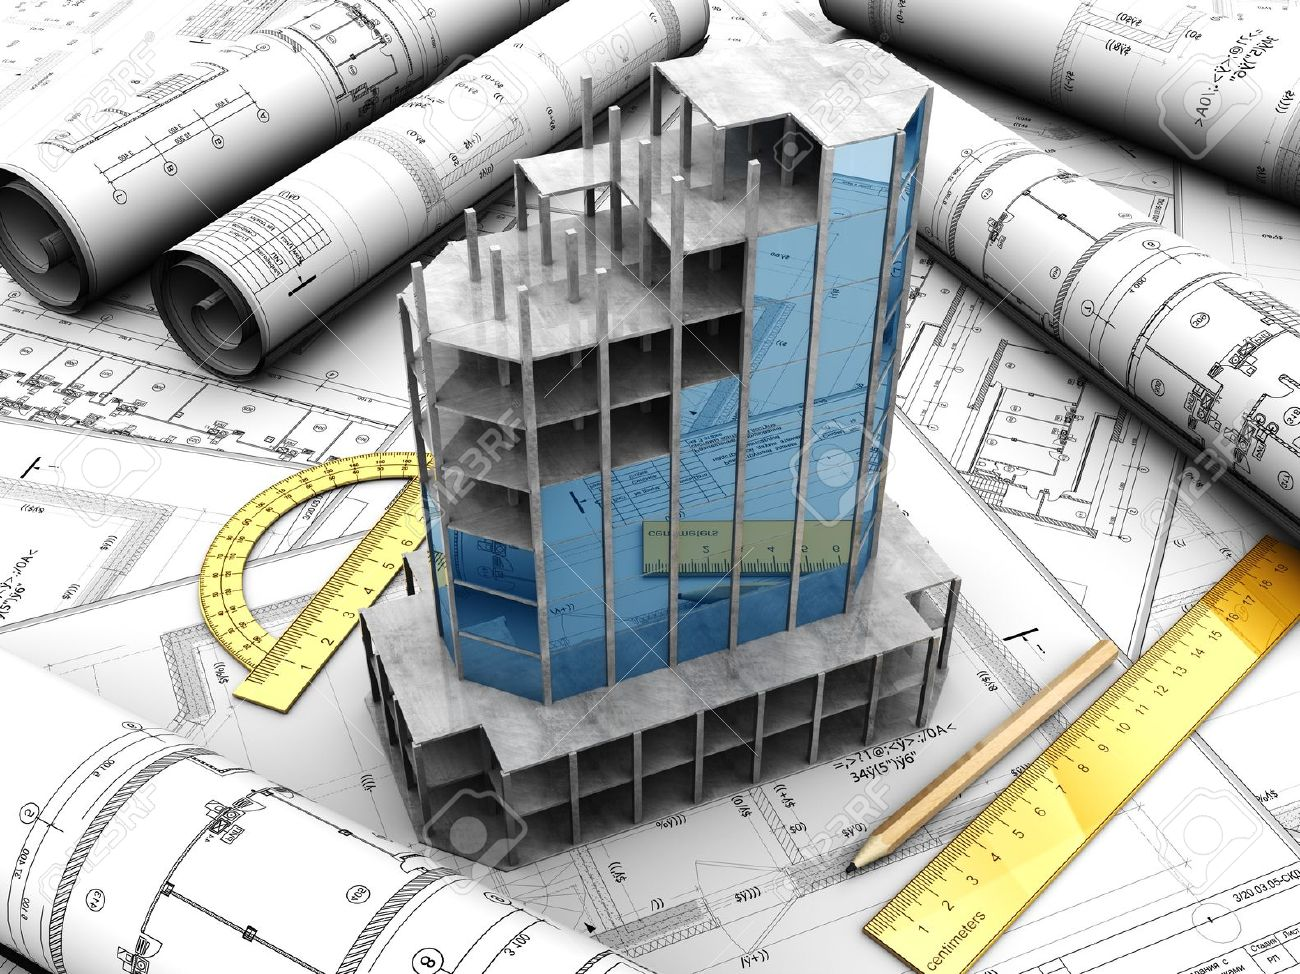 14674534-Modern-design-project-with-pencil-and-rules-on-it-Stock-Photo-construction-building-engineering.jpg